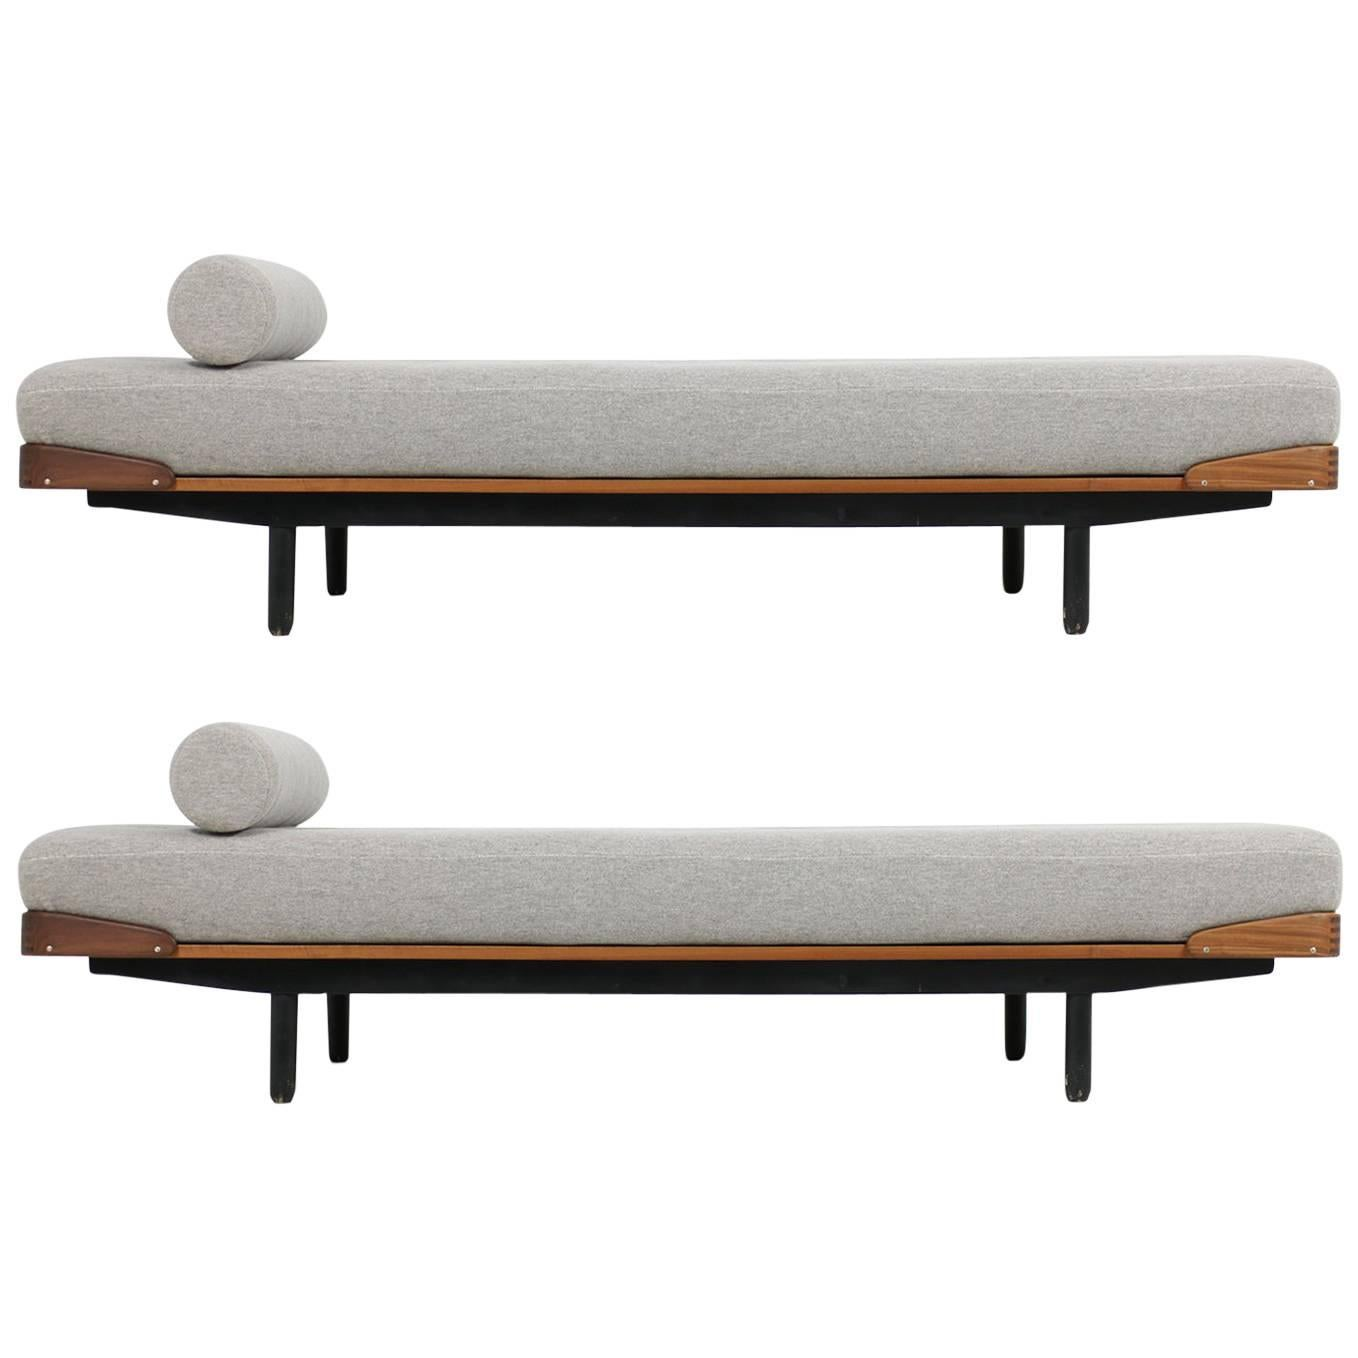 1 of 2 super rare 1960s teak daybed made in norway by asko new upholstery sofa